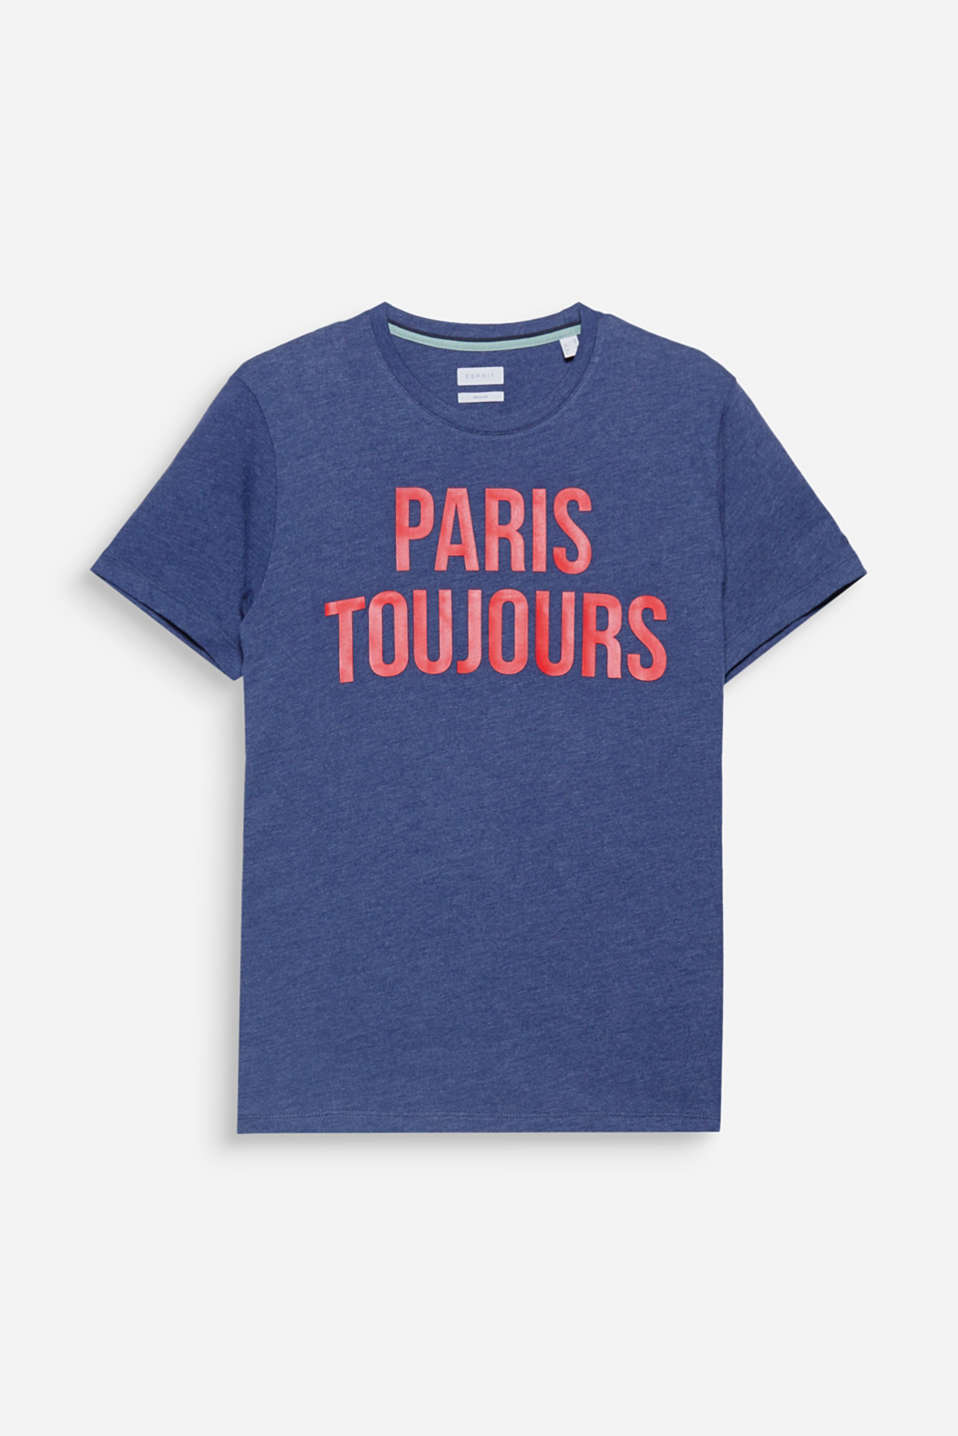 Paris toujours! One statement, one print on this t-shirt in melange jersey.